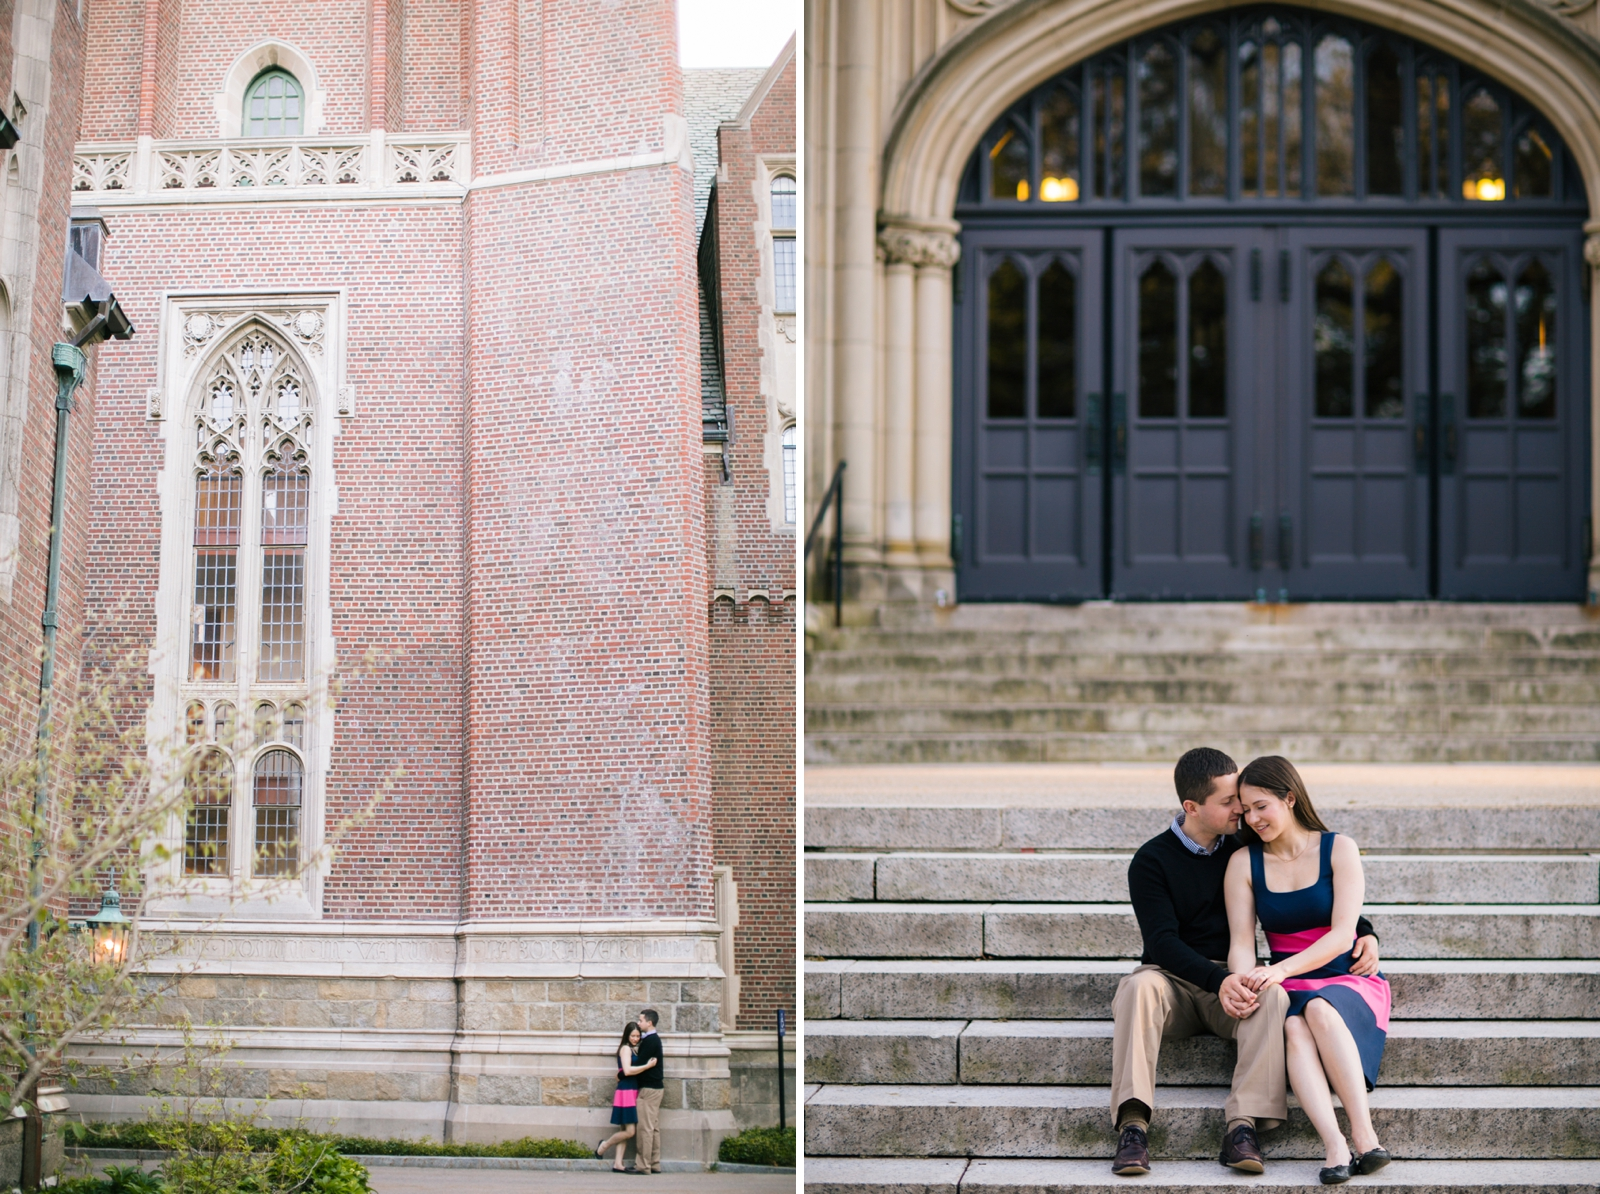 Intimate engagement portrait of couple sitting together on the steps at Wellesley campus.